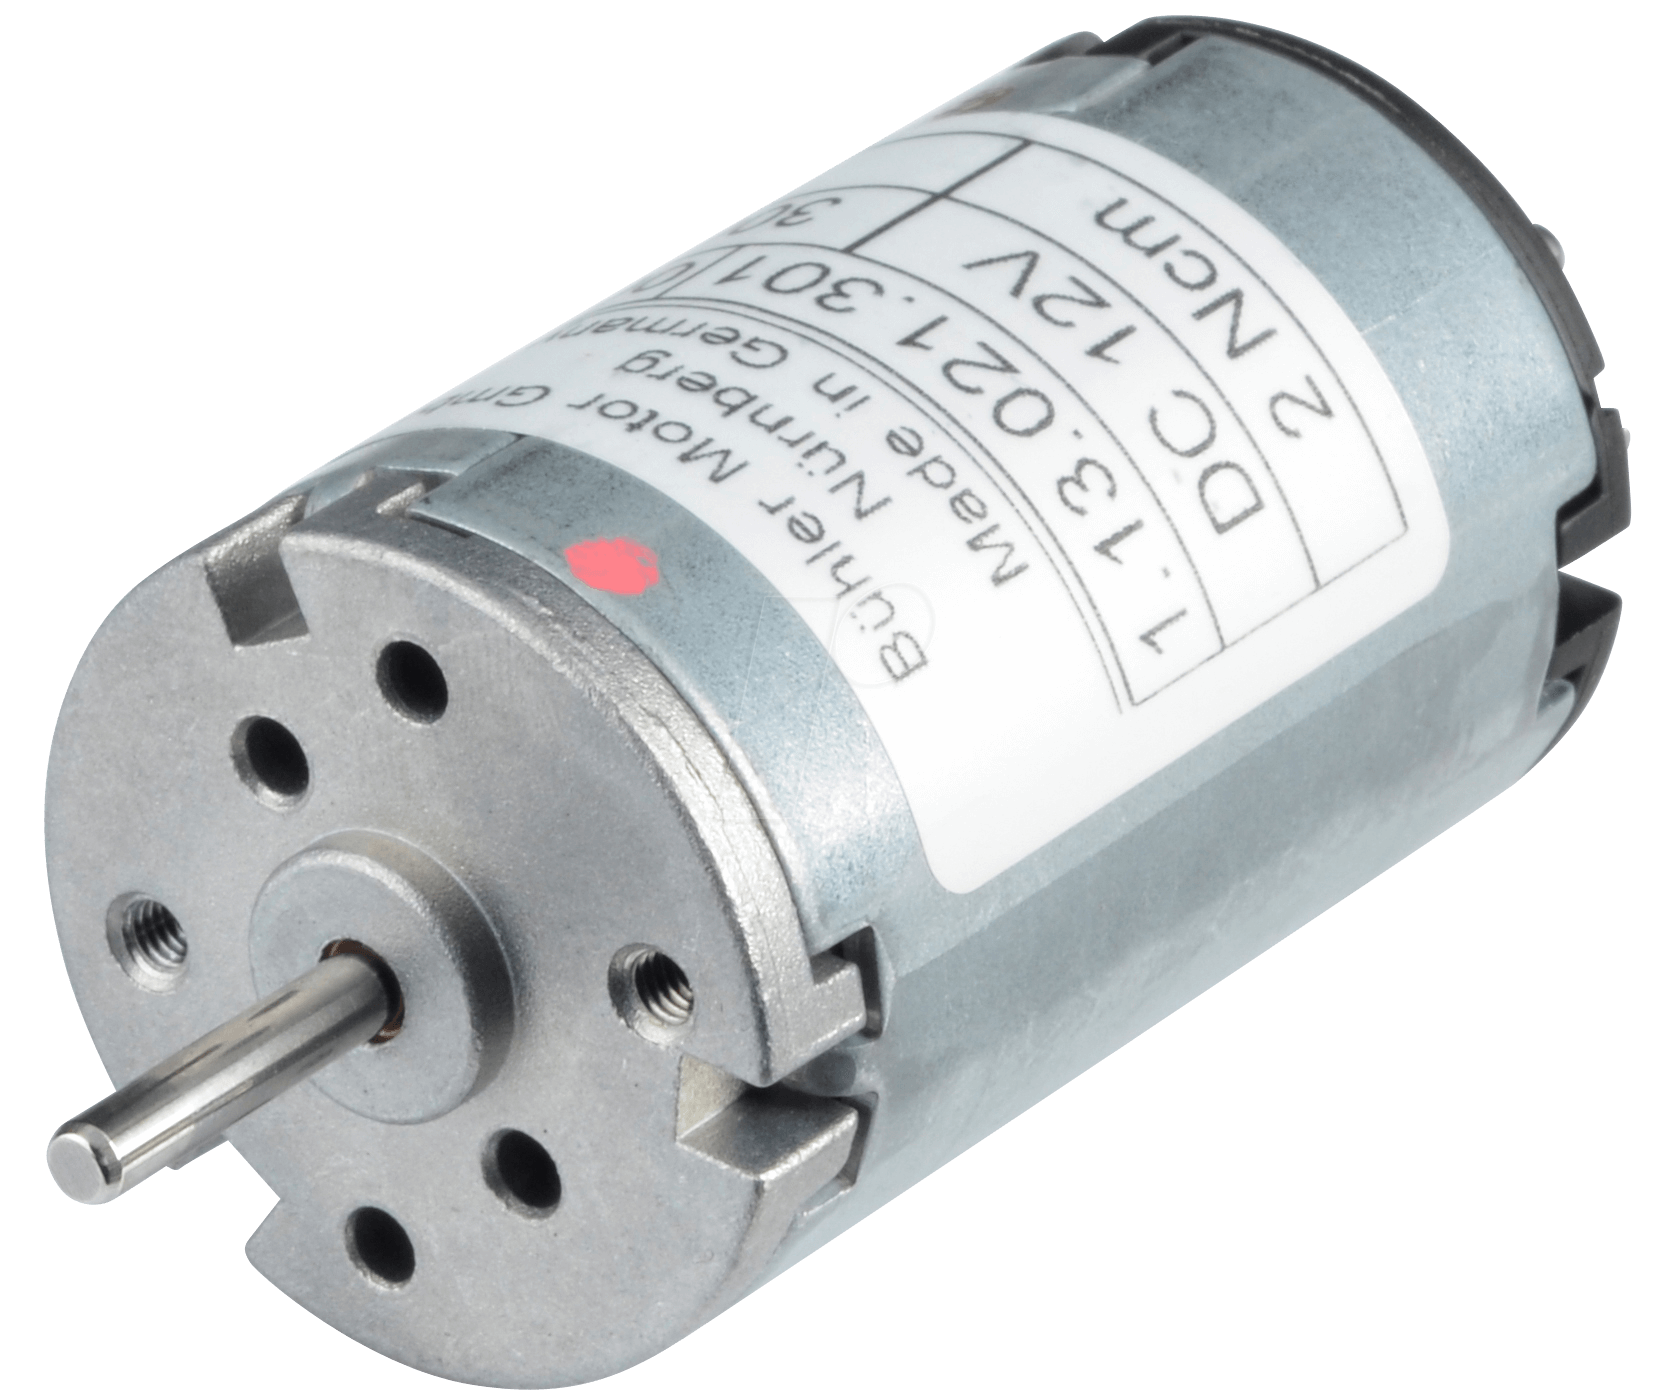 Bm dc motor 31x51 12v 09a 4500rpm at for What is dc motor